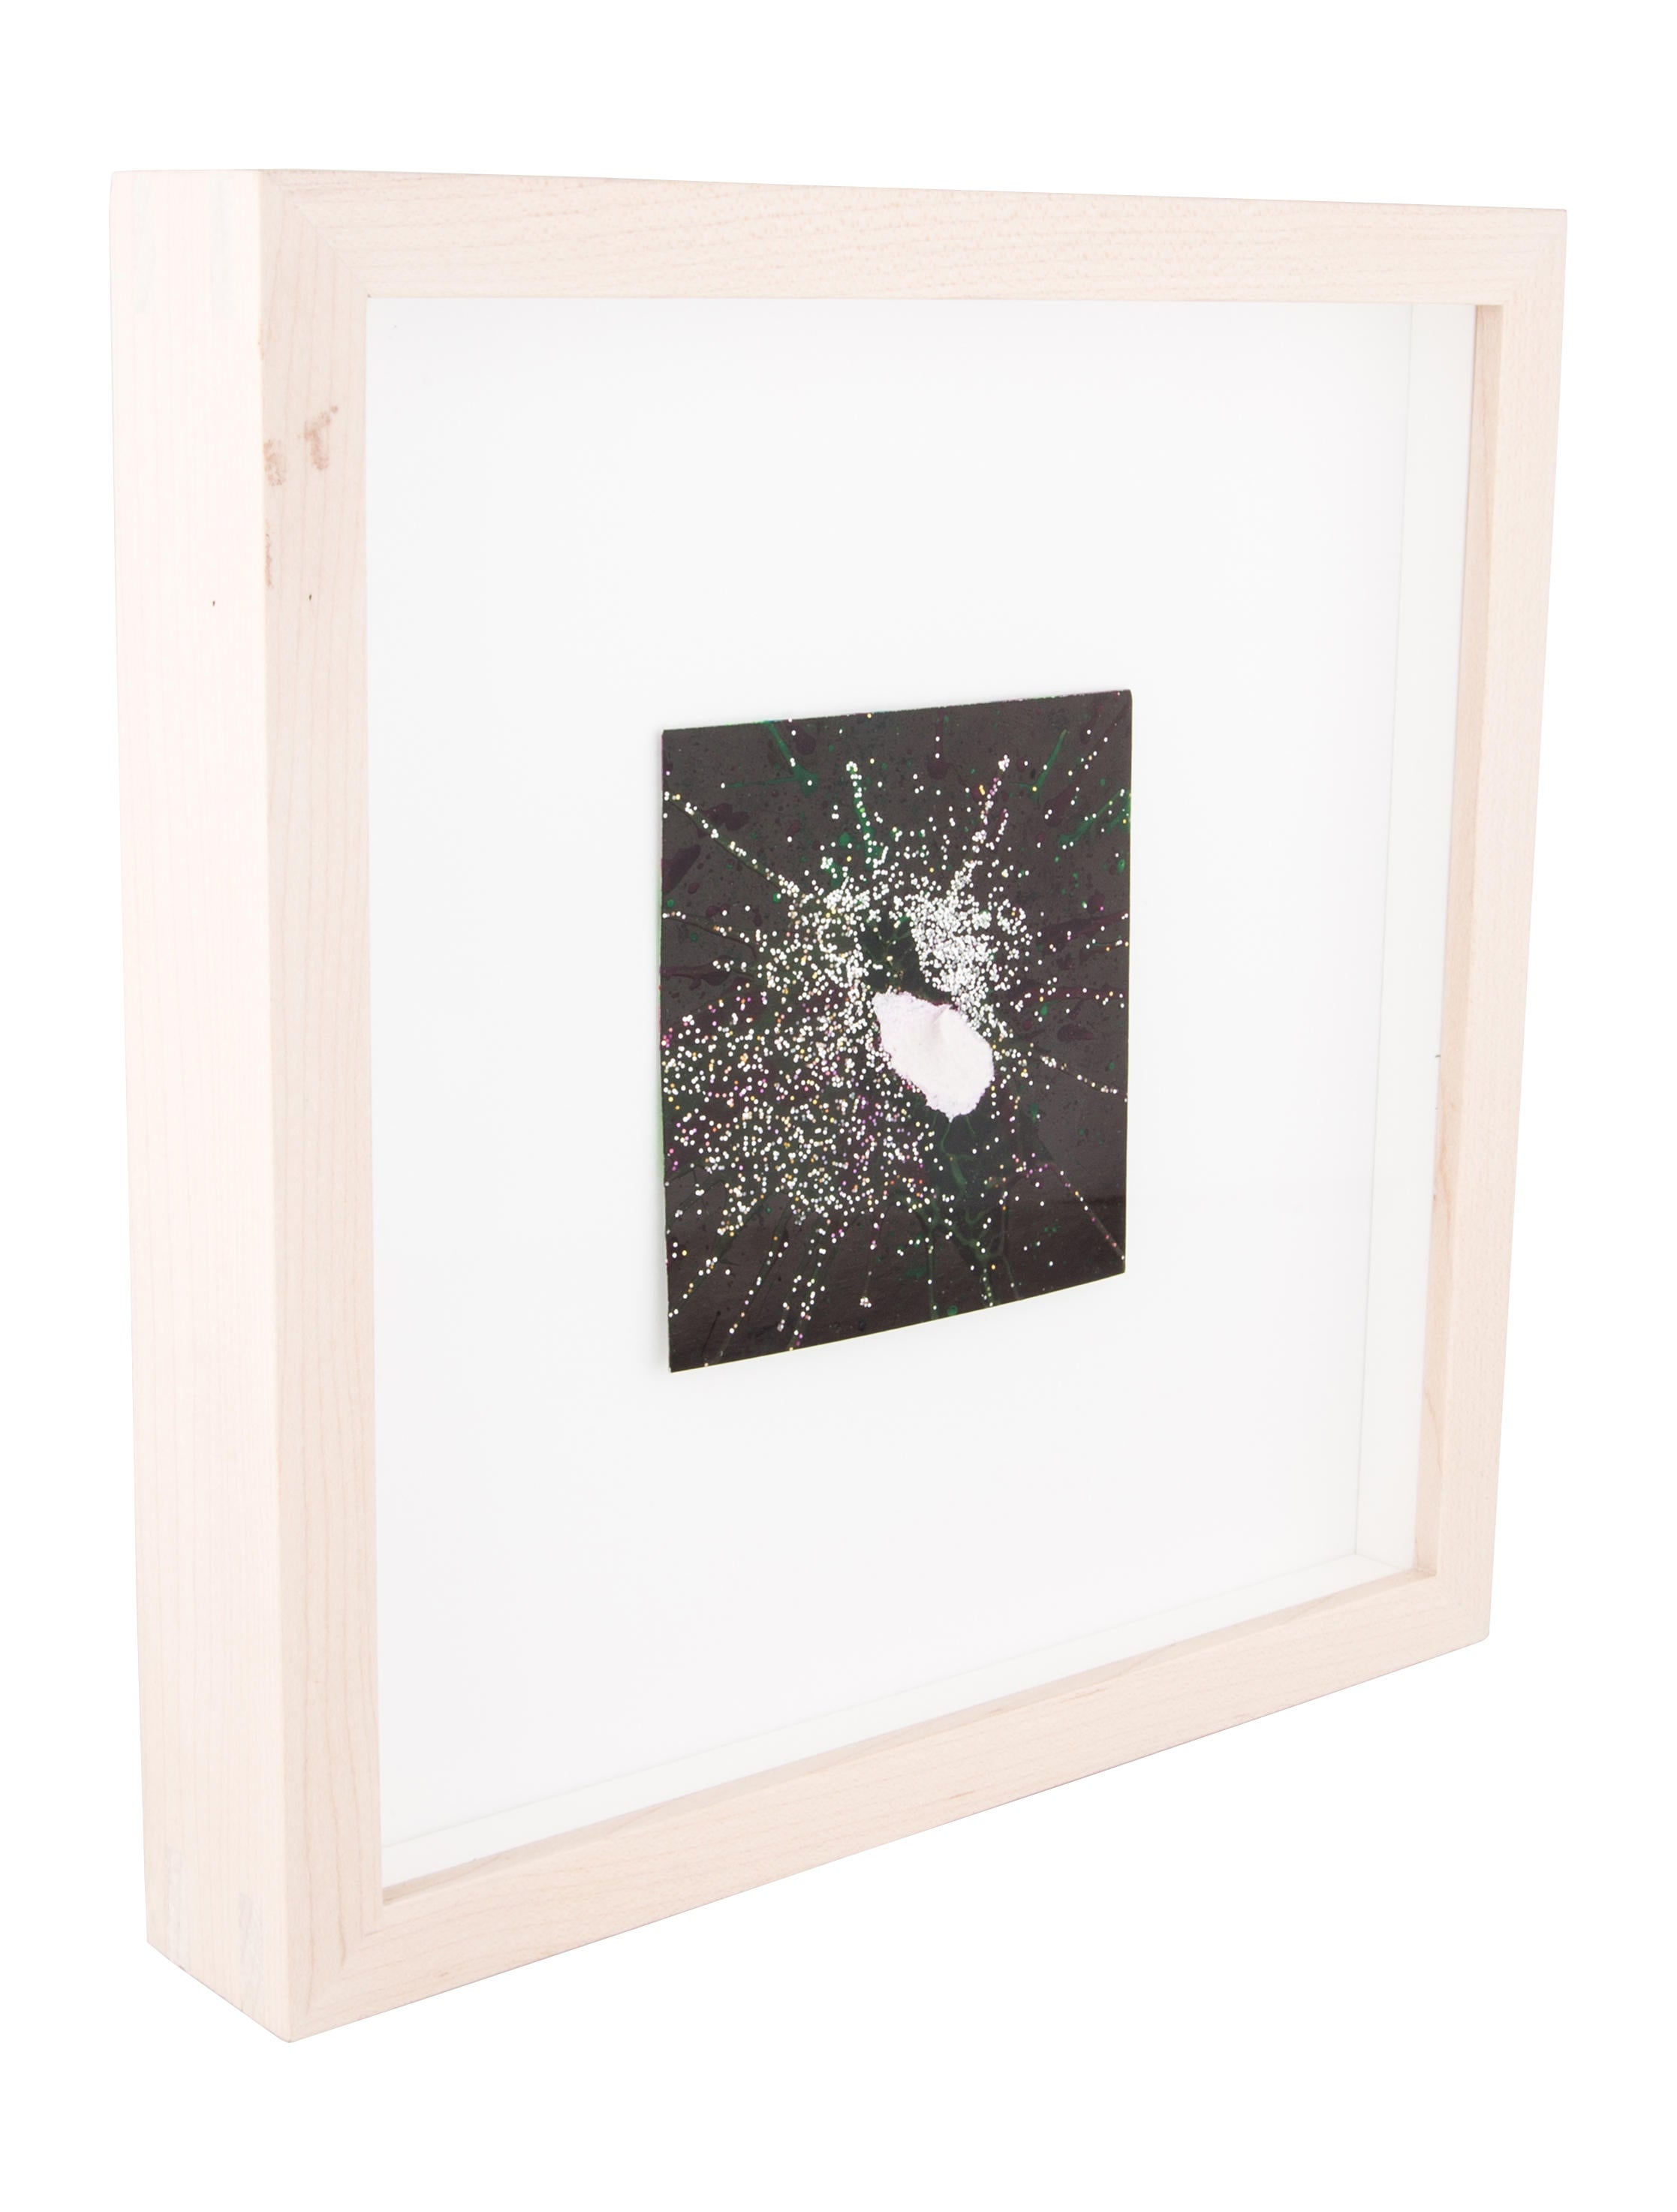 Abstract Glitter Framed Picture - Decor And Accessories - DECOR20611 ...